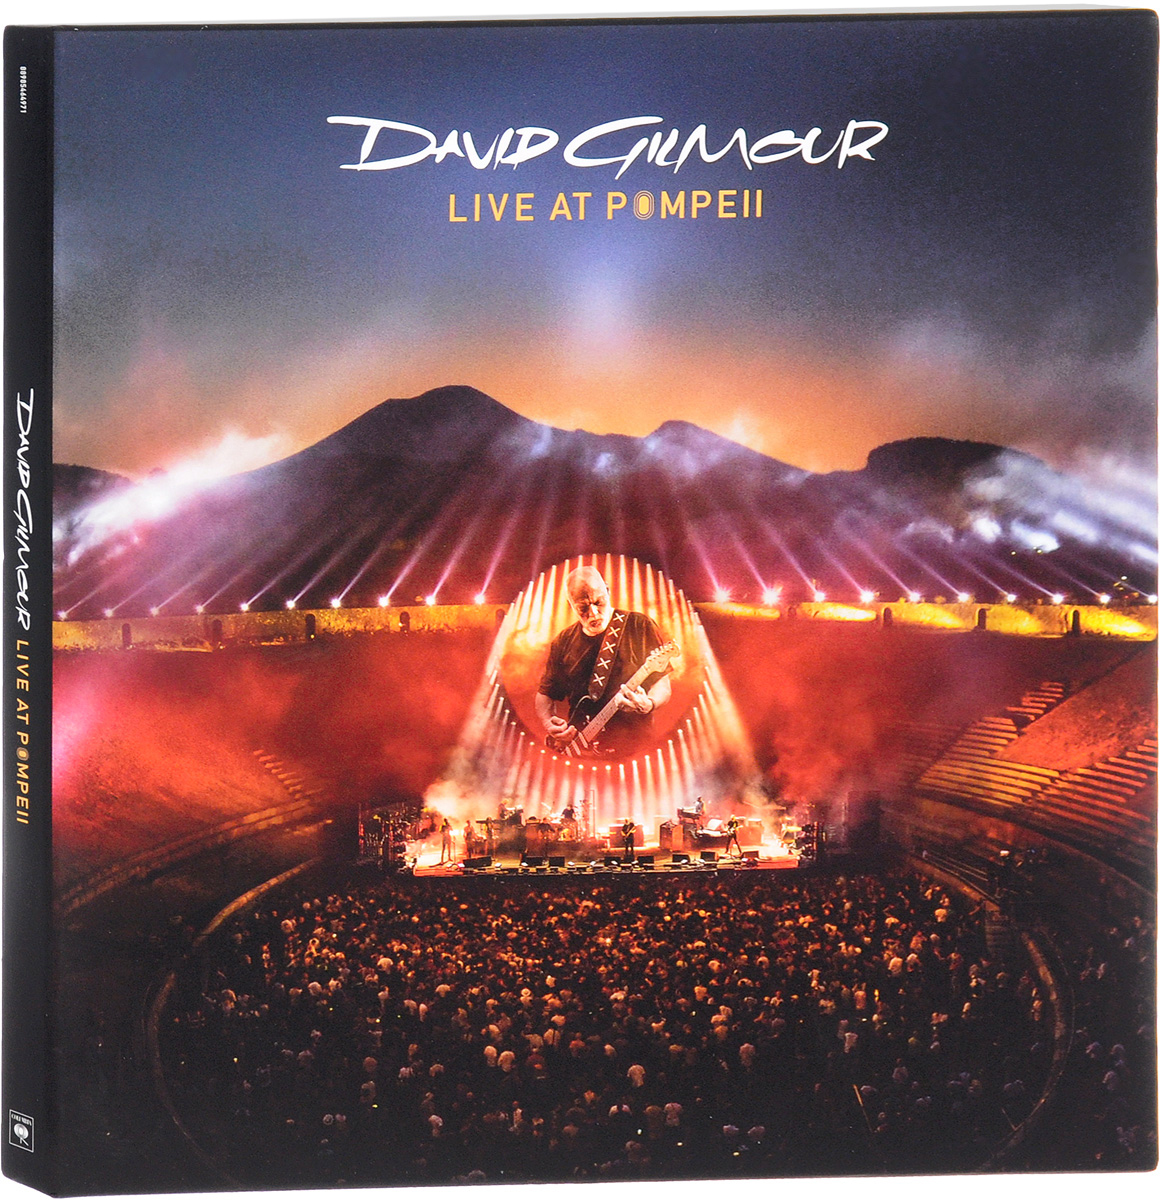 Дэвид Гилмор David Gilmour. Live At Pompeii (4 LP) david gilmour – live at pompeii blu ray